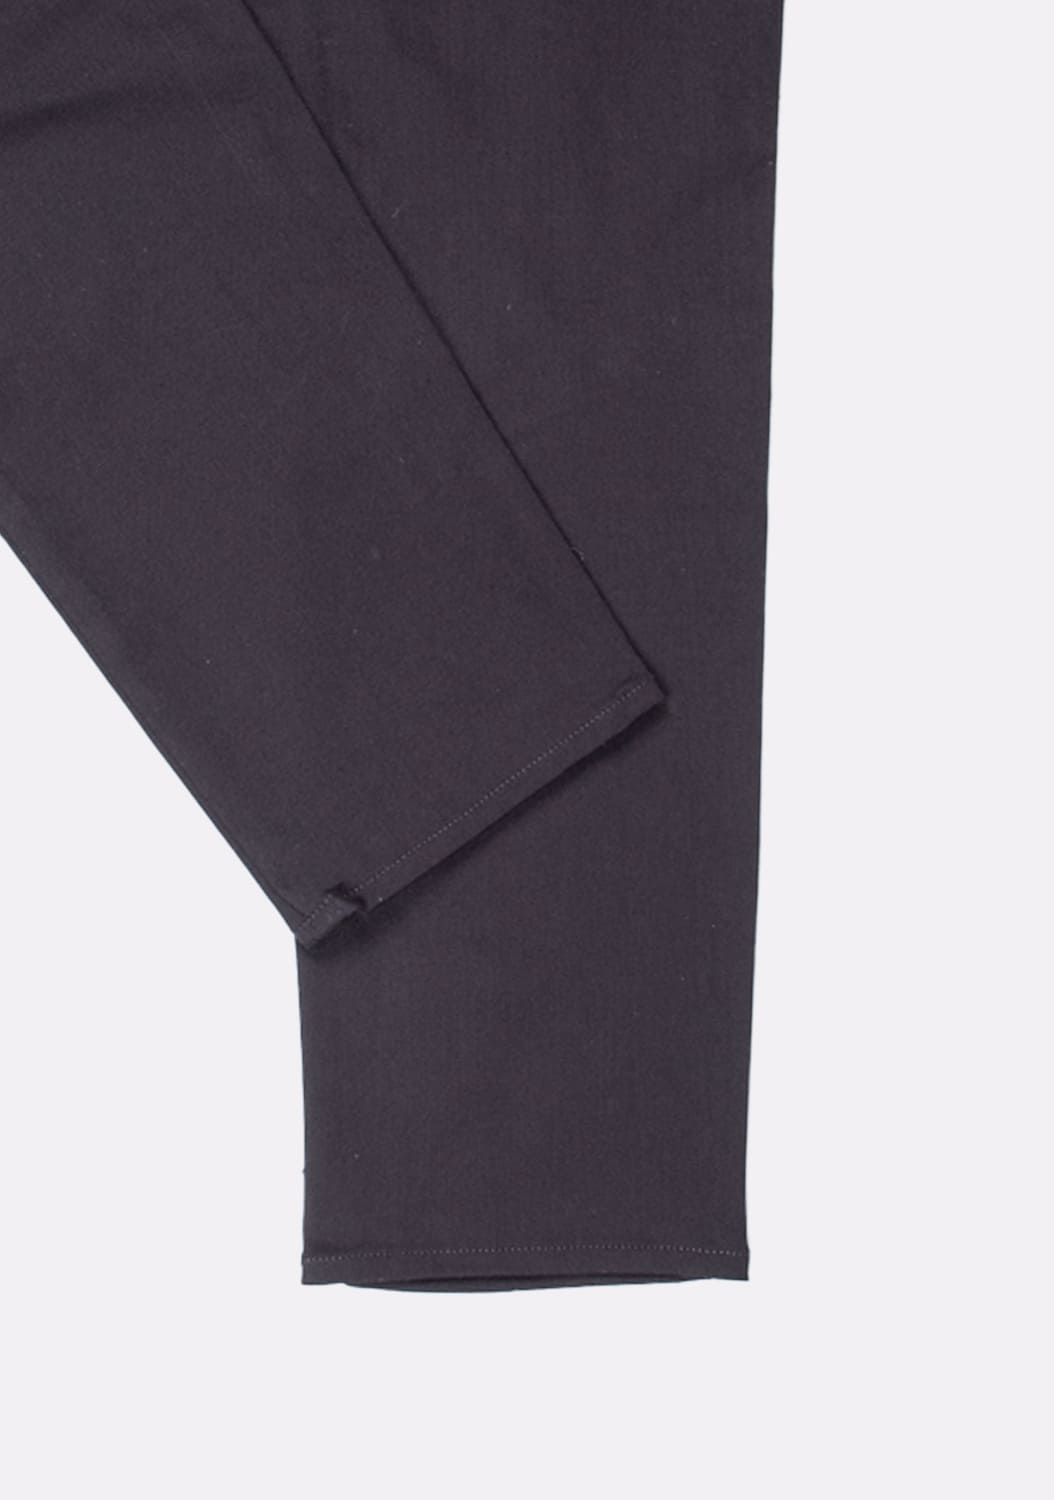 Acne-Studios-Blå-Konst-North-Stay-Black-dzinsai-dydis-34-32 (10)